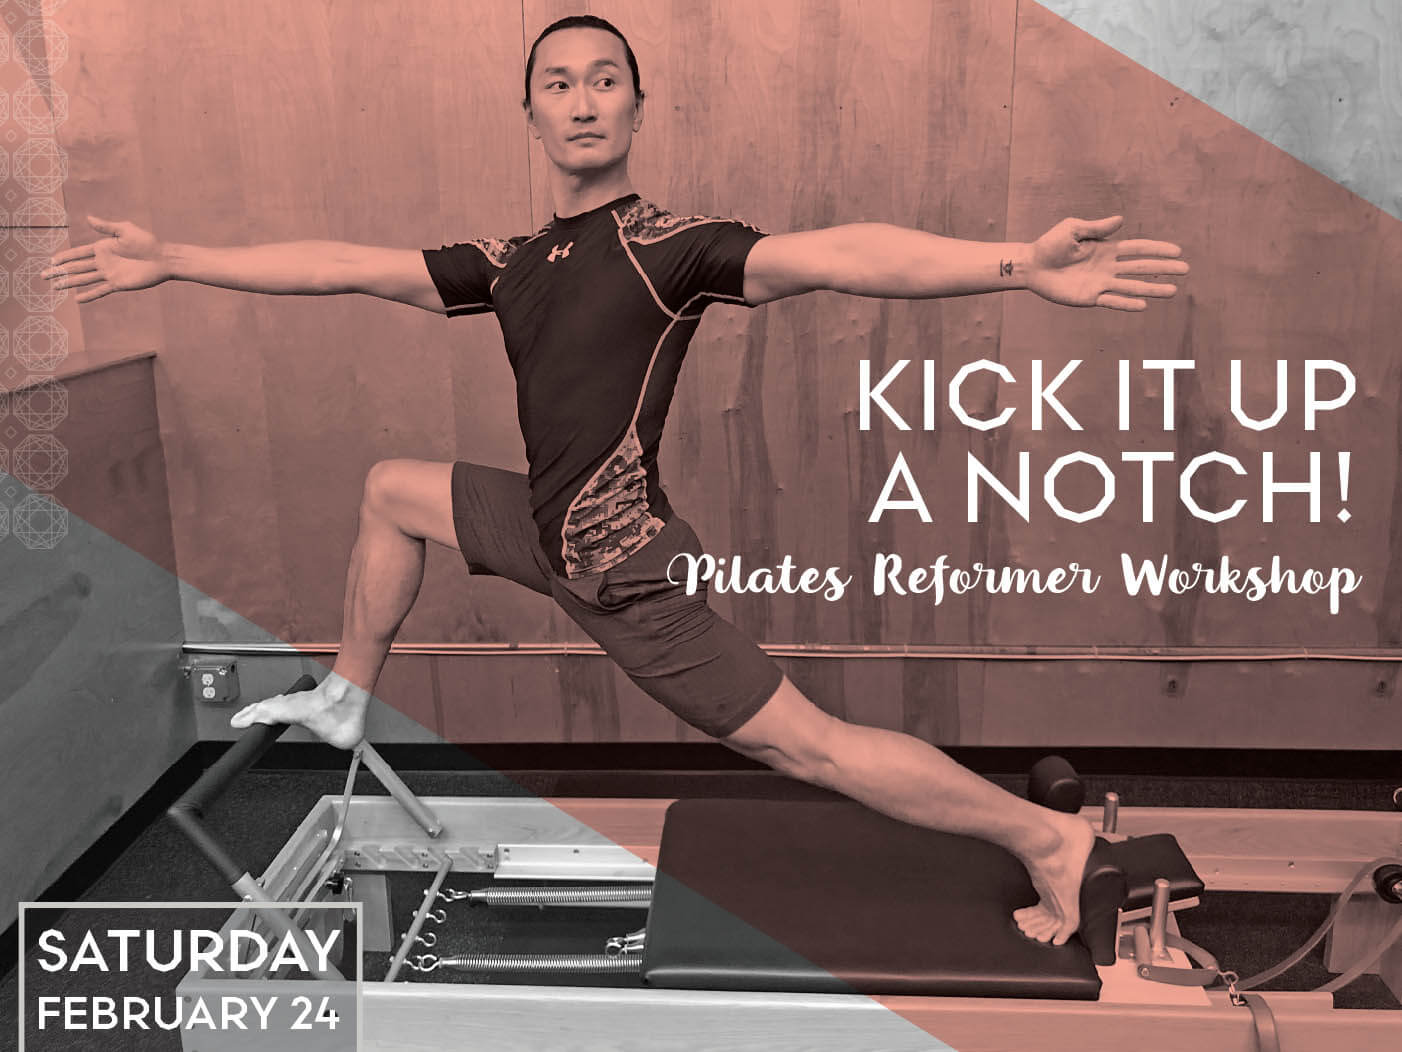 Kick it Up a Notch: Pilates Reformer Workshop